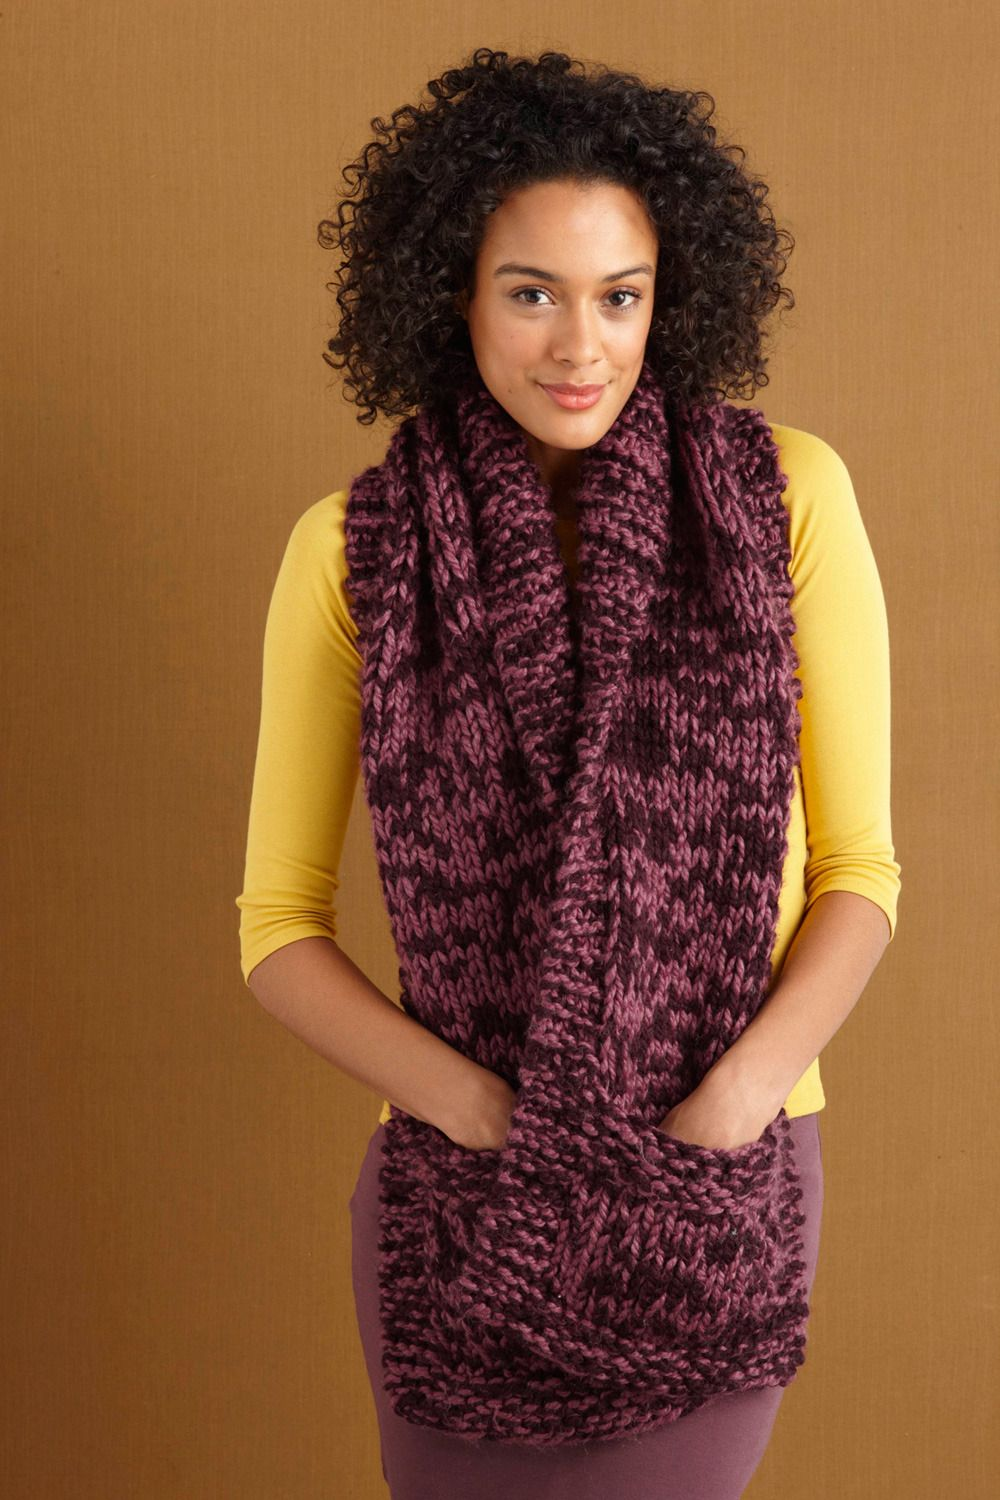 Knit Trippin': patterns to knit on vacation   Free ...